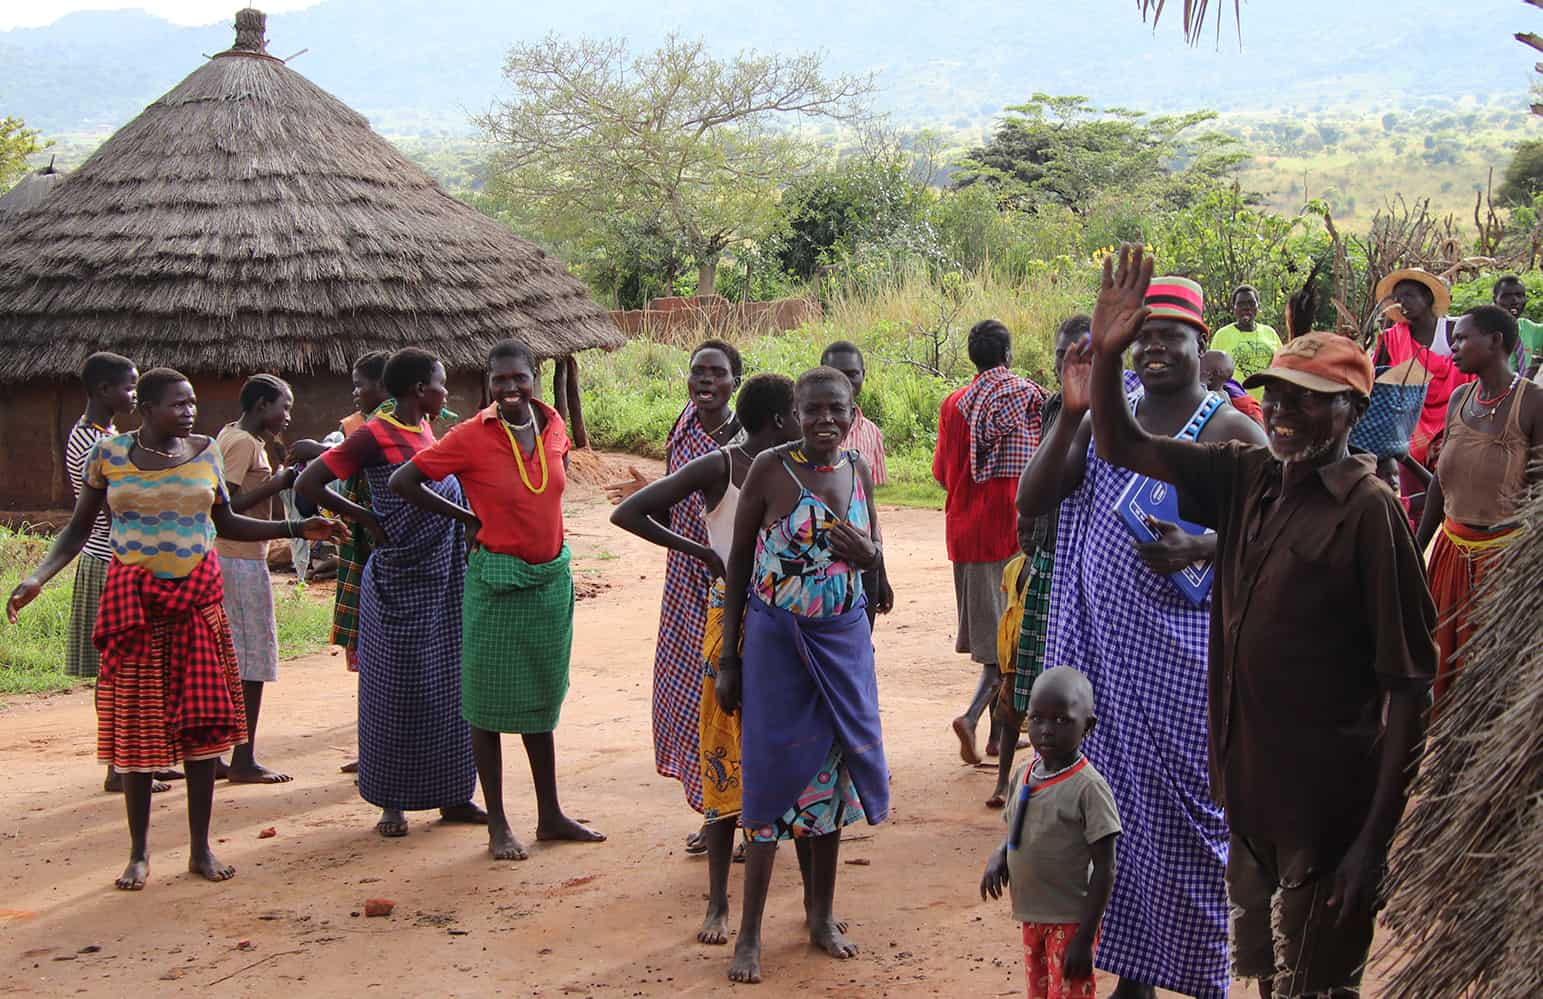 Karamojong village outside Kipedo Park. The man in the red-striped hat is the village chief.